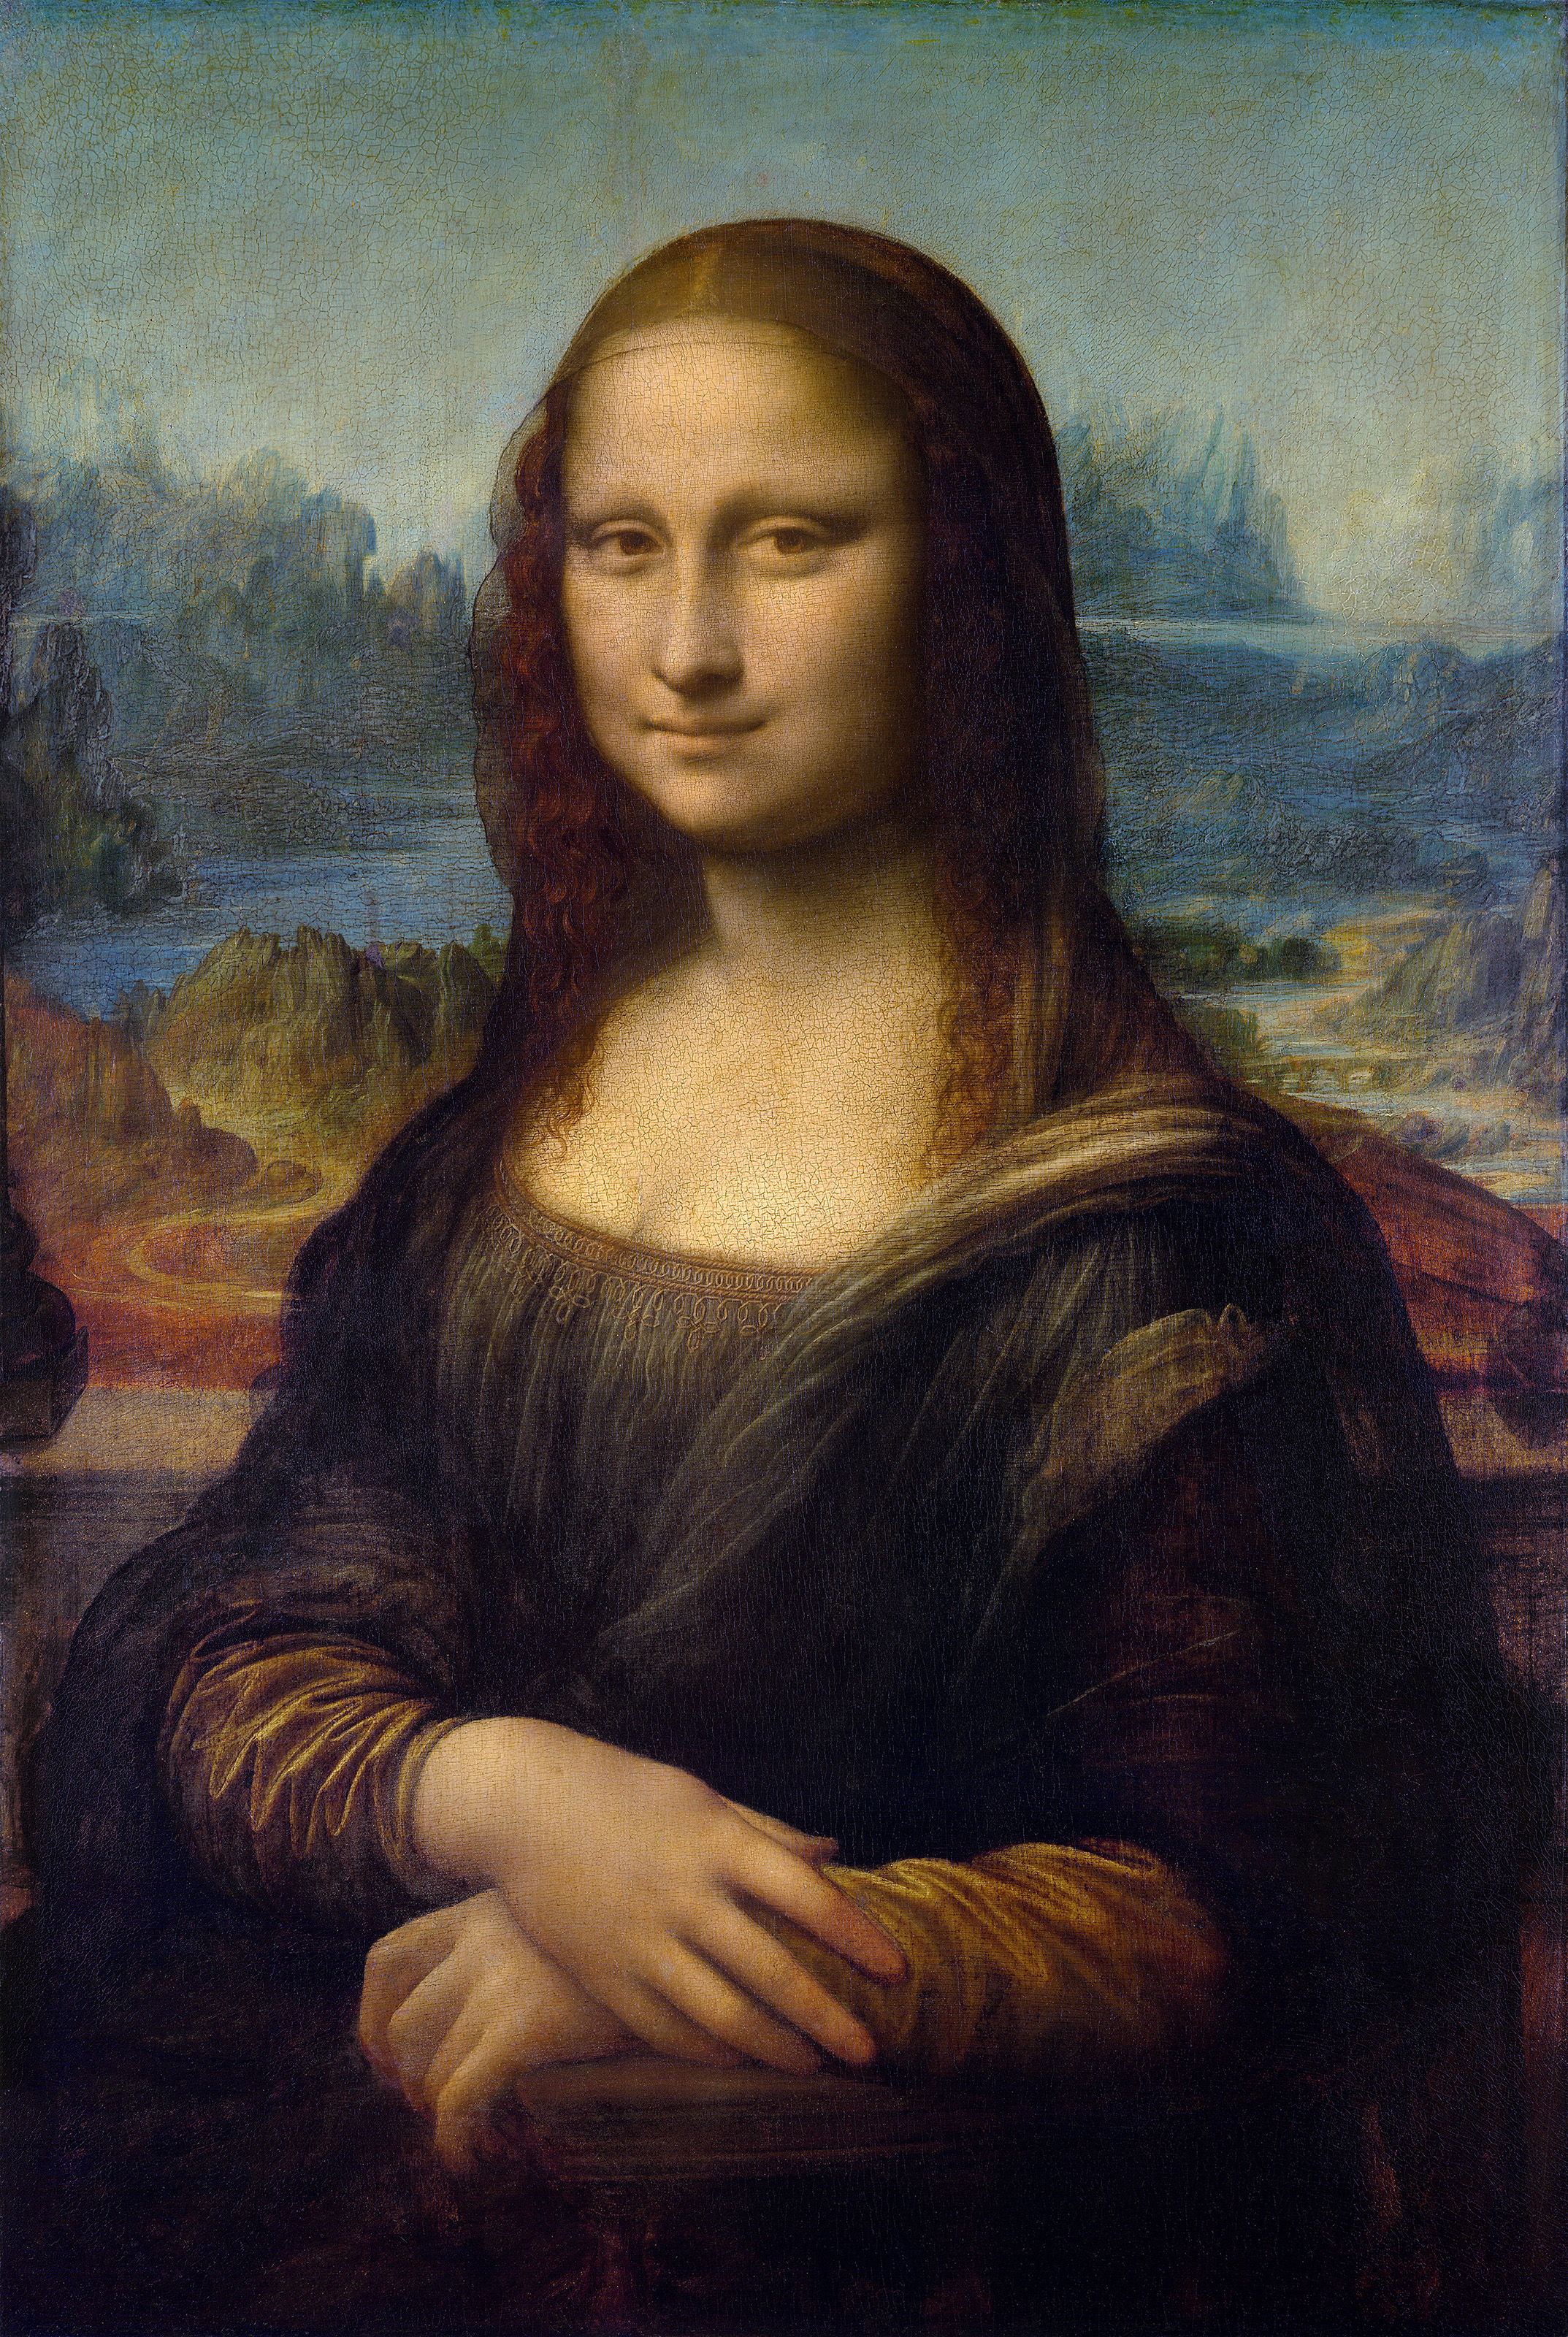 Some Masterpieces from the Public Domain, Other Painters ... Da Vinci Mona Lisa